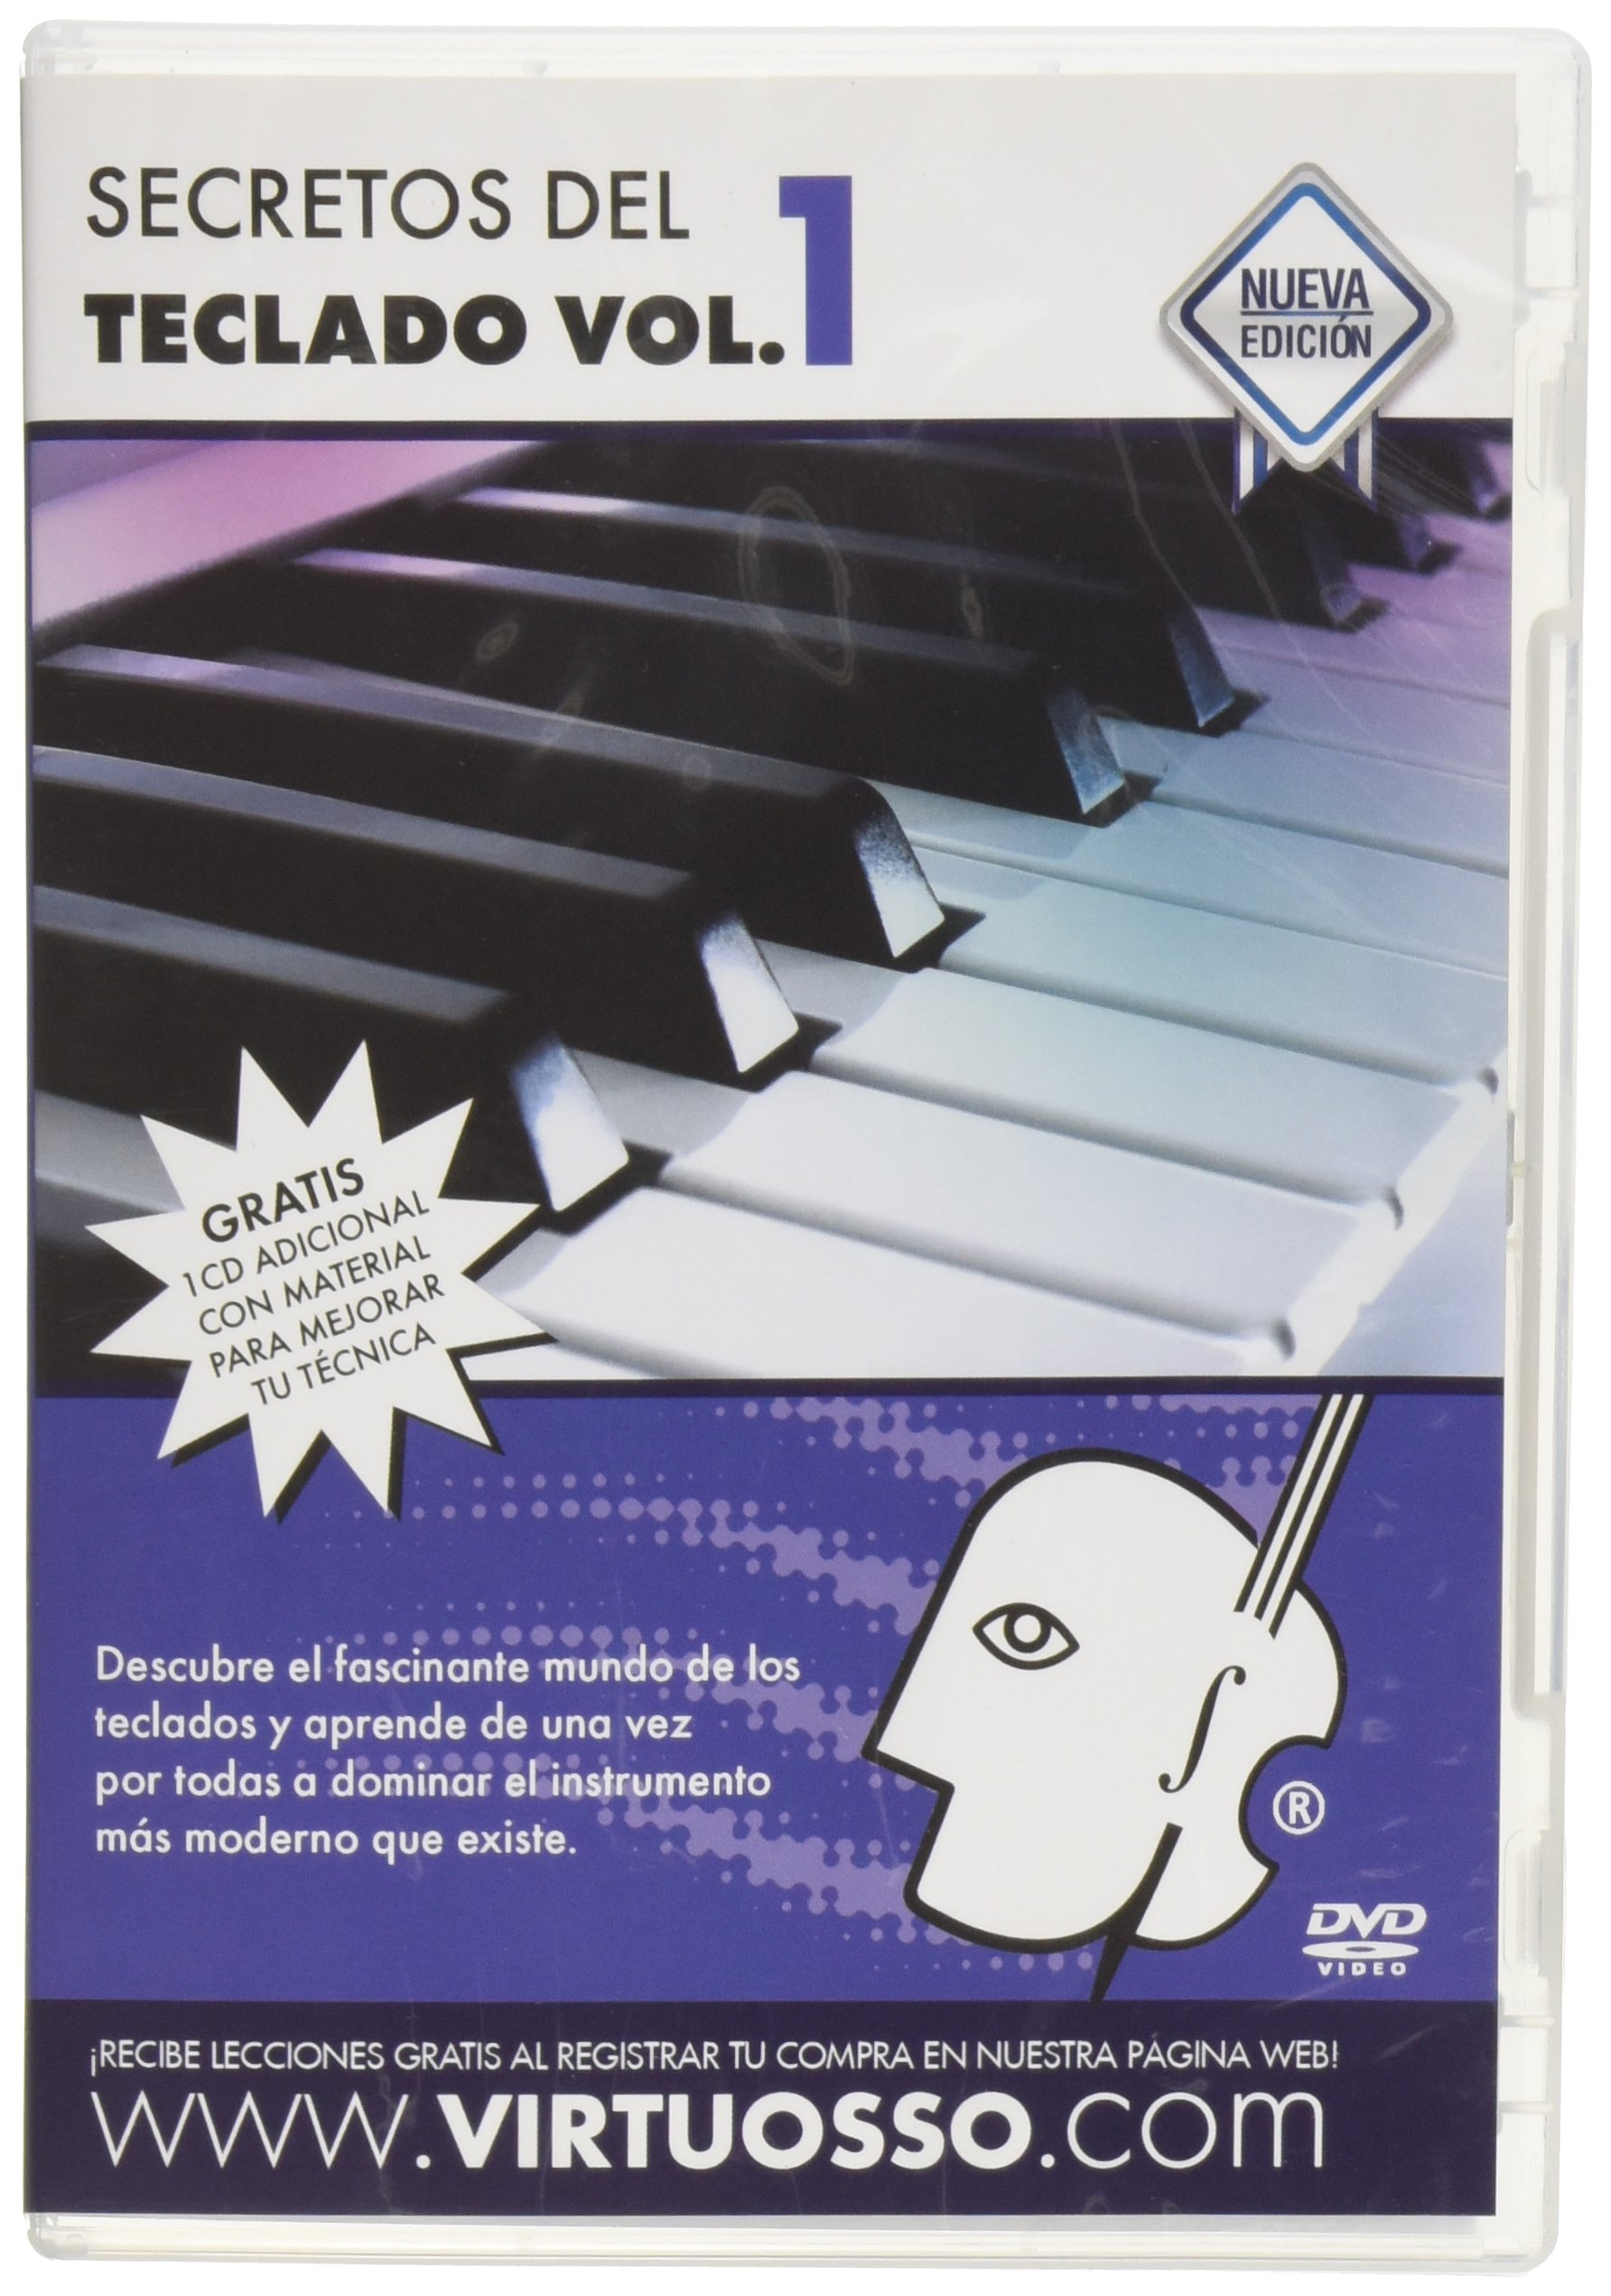 Virtuosso Musical Keyboard Method for Beginners 3 DVD (Curso Completo De Teclados Para Principiantes En 3 DVD) SPANISH ONLY by Virtuosso